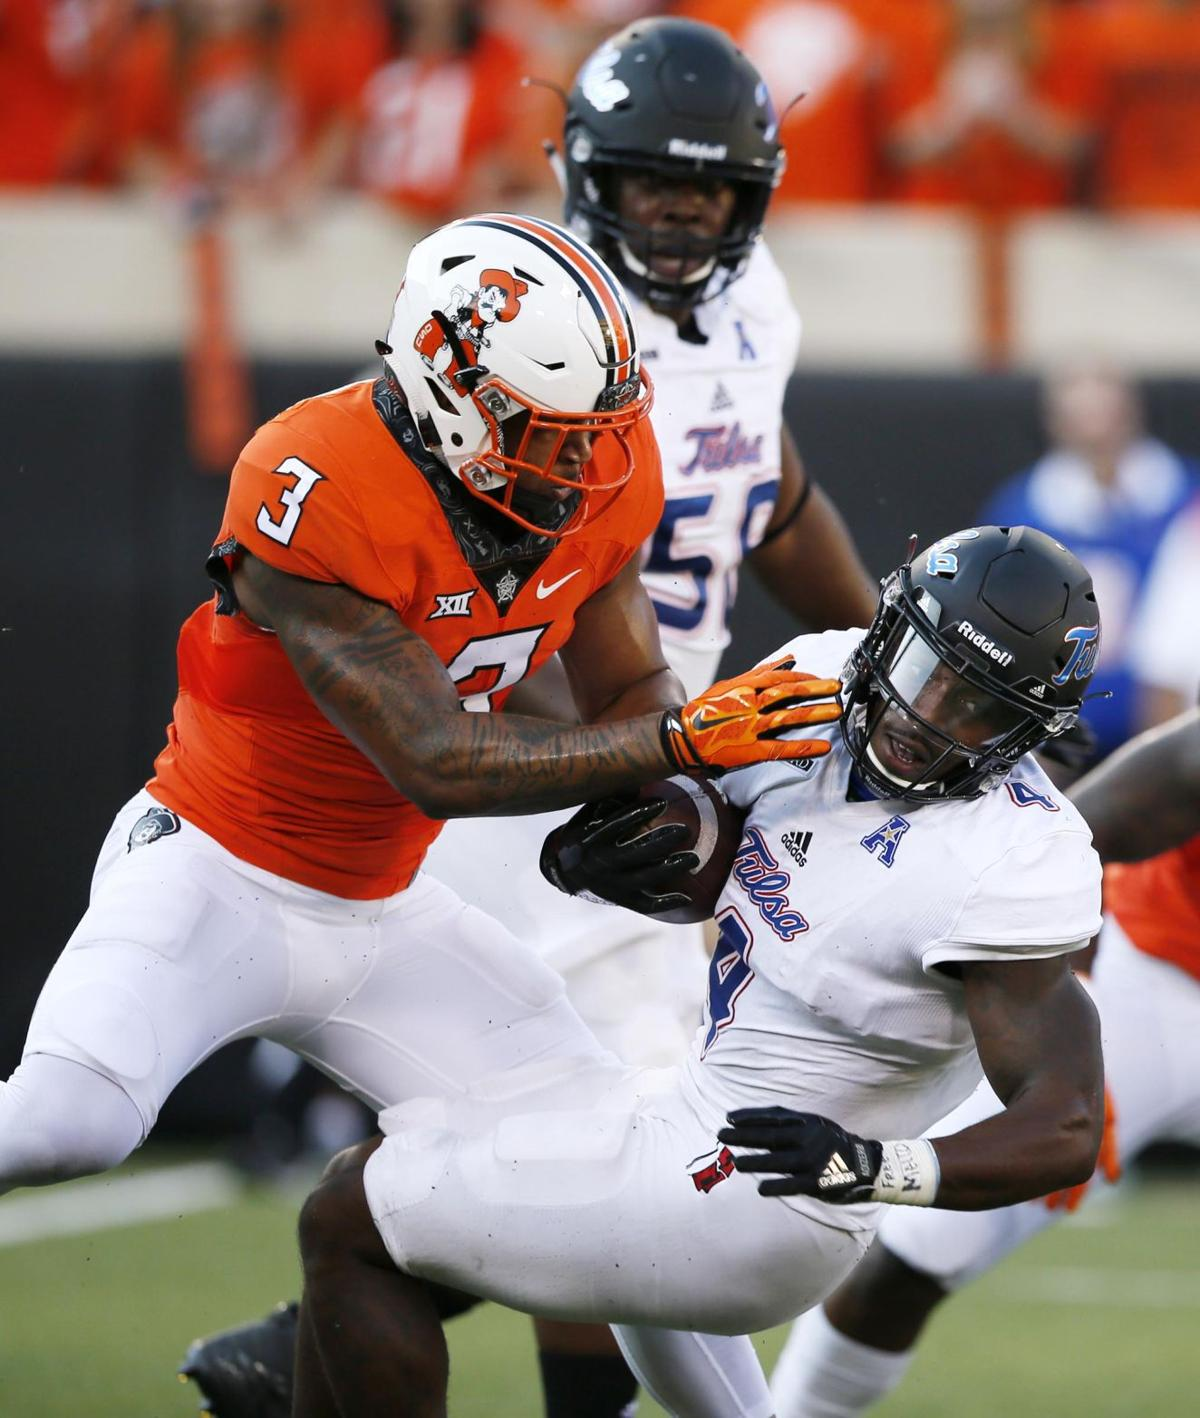 OSU football: LBs Kenneth Edison-McGruder and Kevin Henry ...